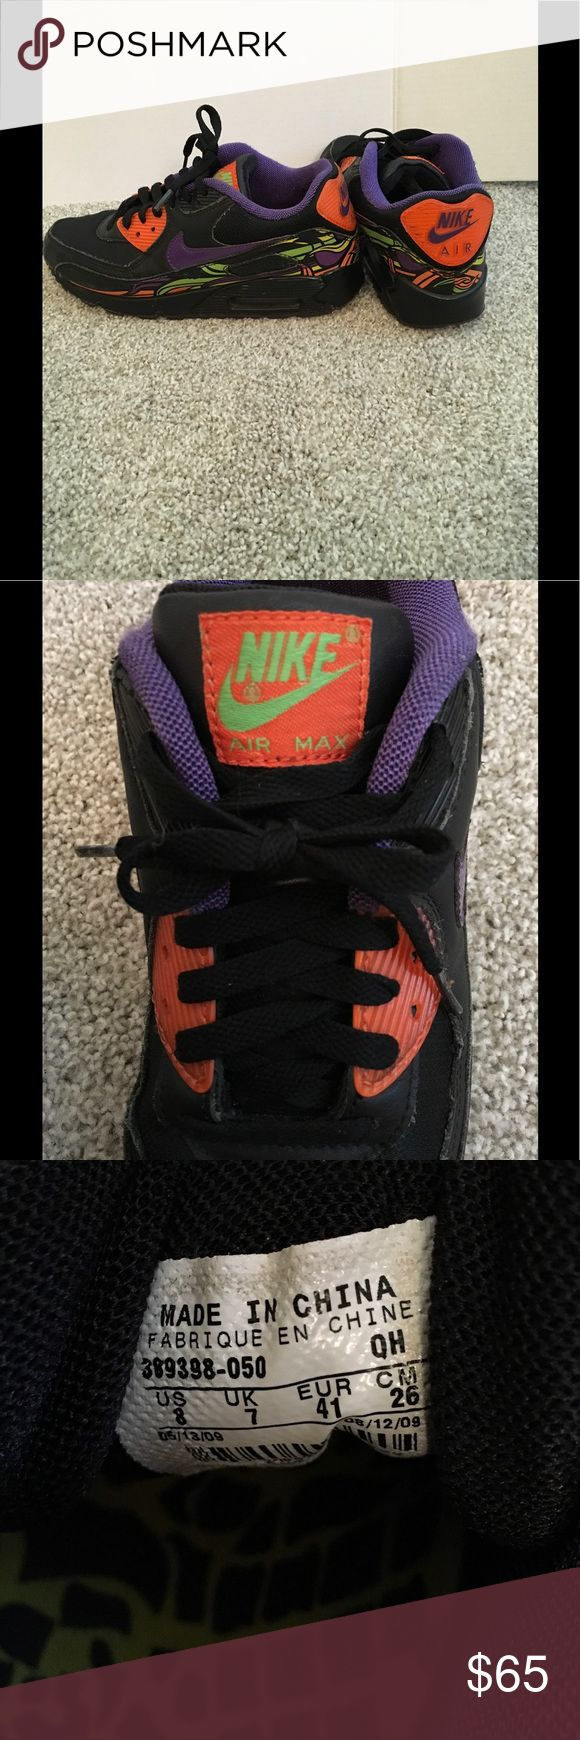 Exclusive Air Max Sneaker Minor scuffs but in great condition and exclusive design! Nike Shoes Sneakers